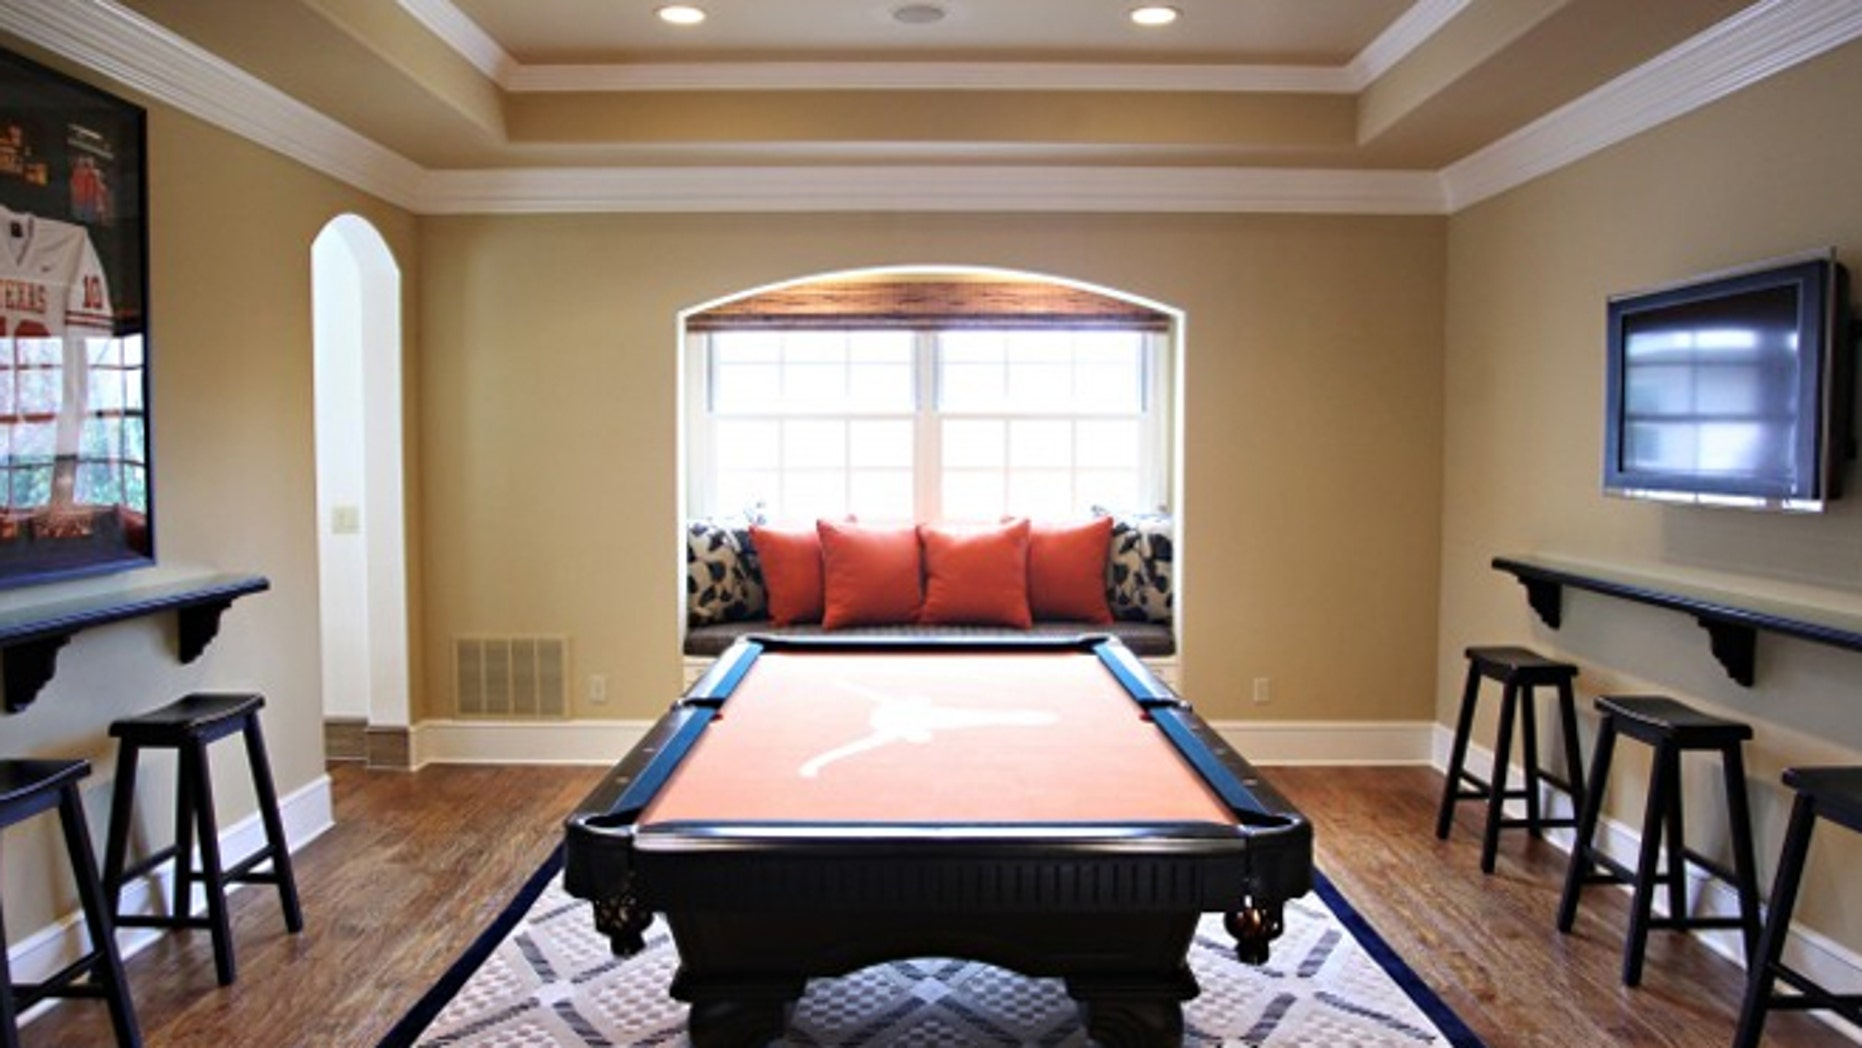 This dining room was re-envisioned as an entertainment room, with a dining table swapped out for a billiards table.